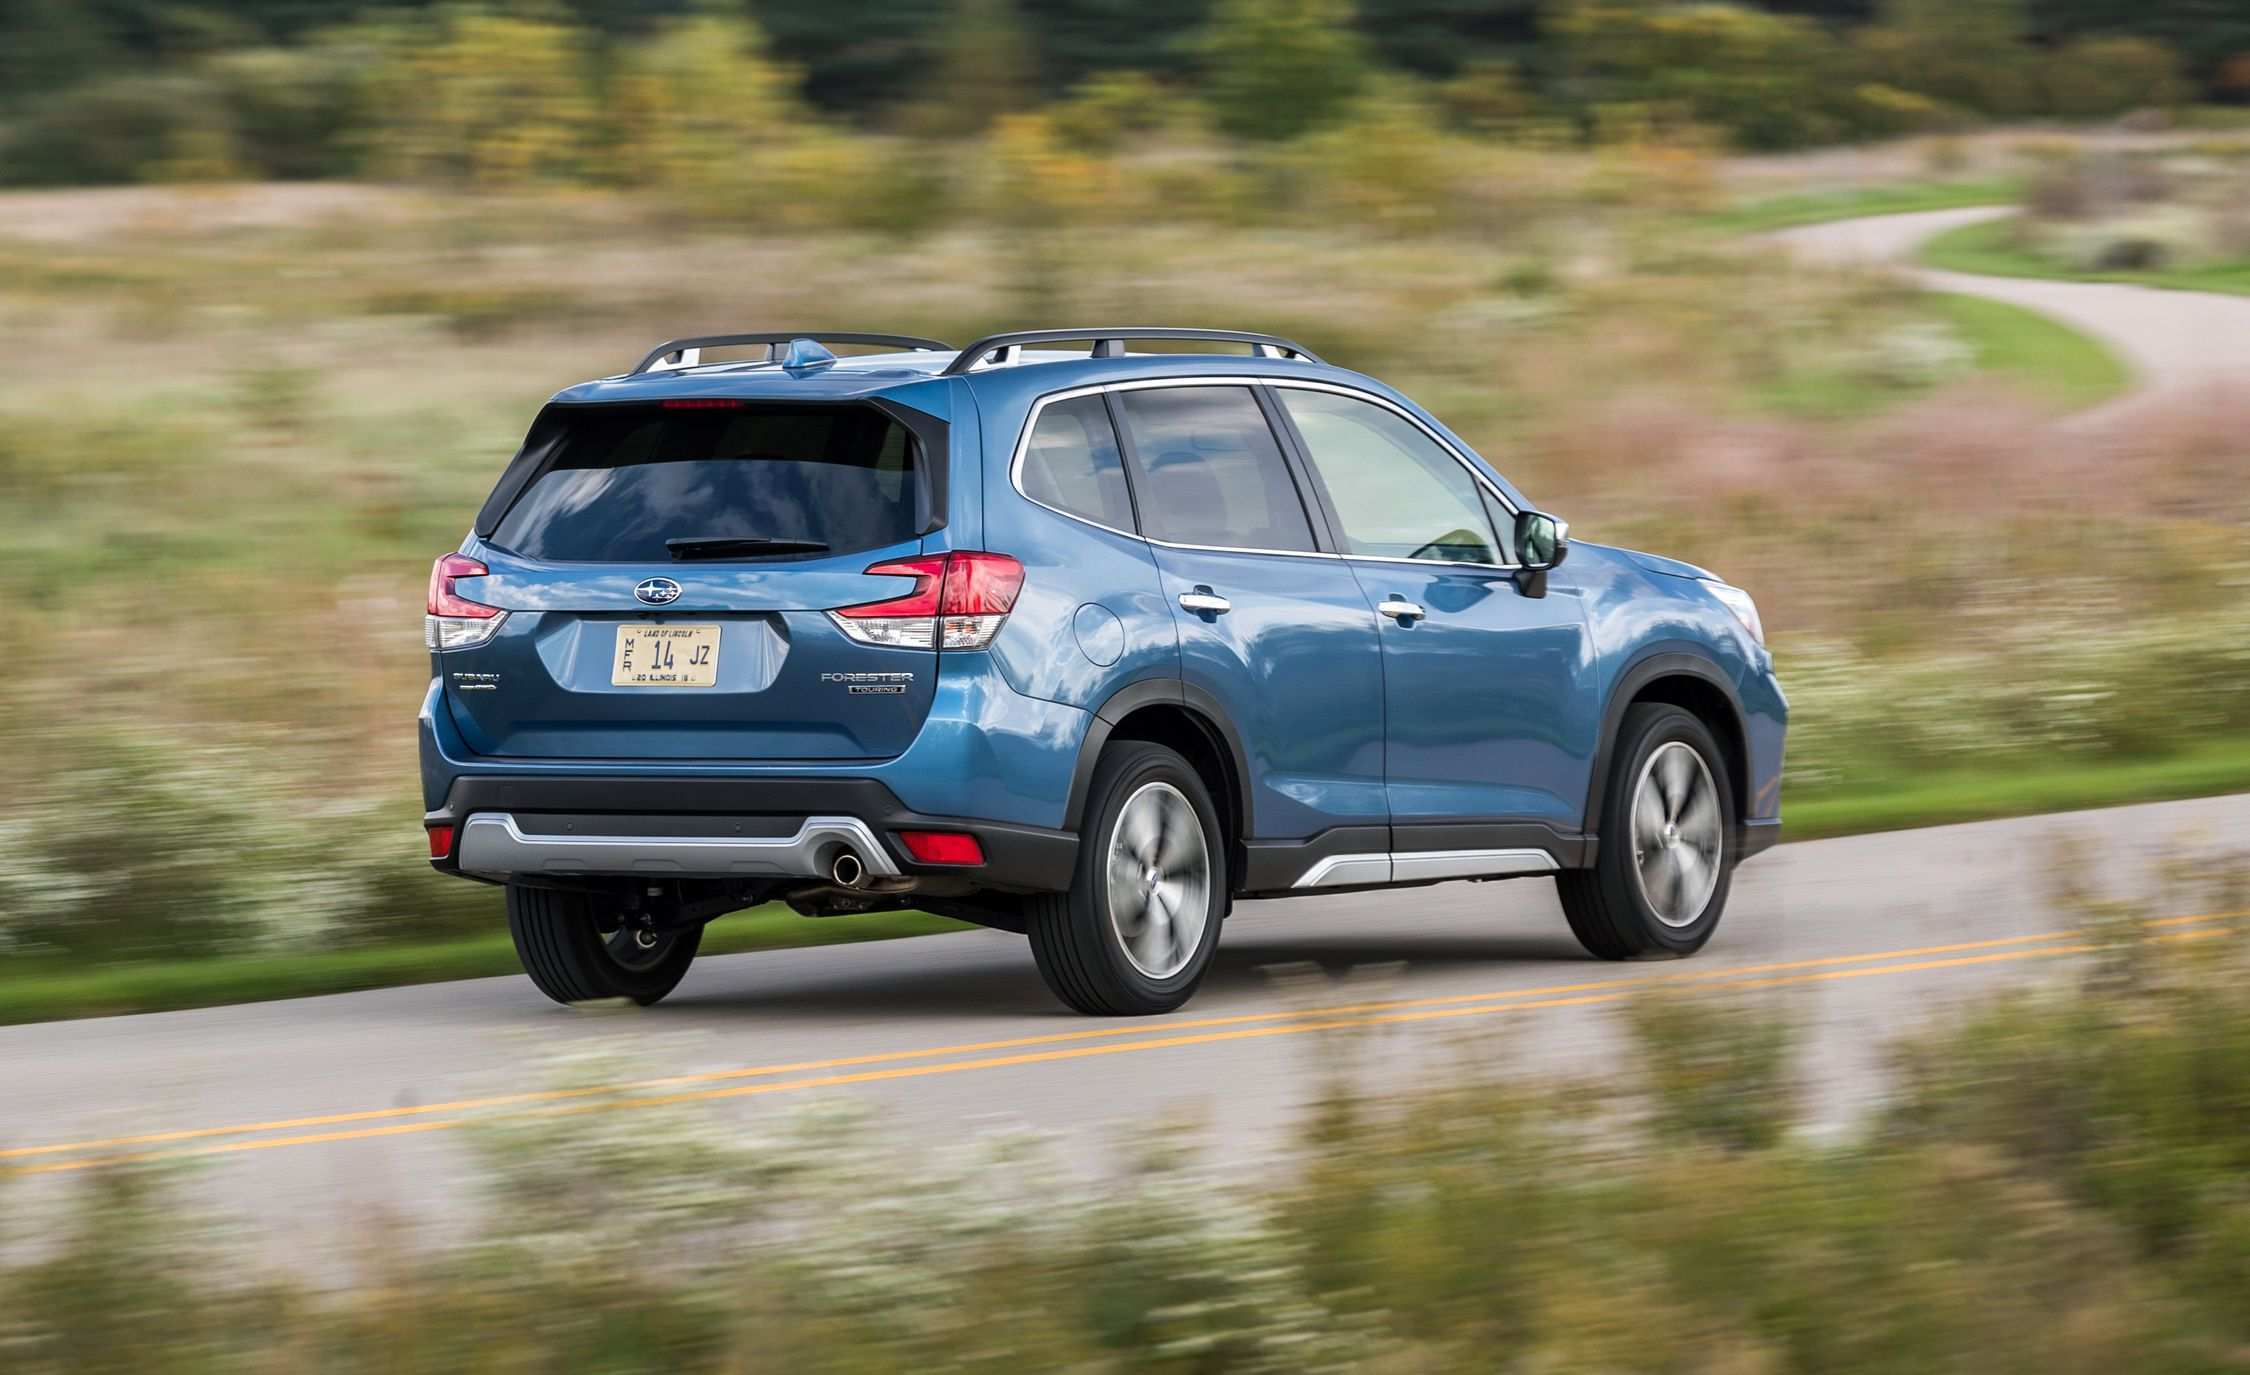 21 New 2019 Subaru Forester Mpg Engine with 2019 Subaru Forester Mpg